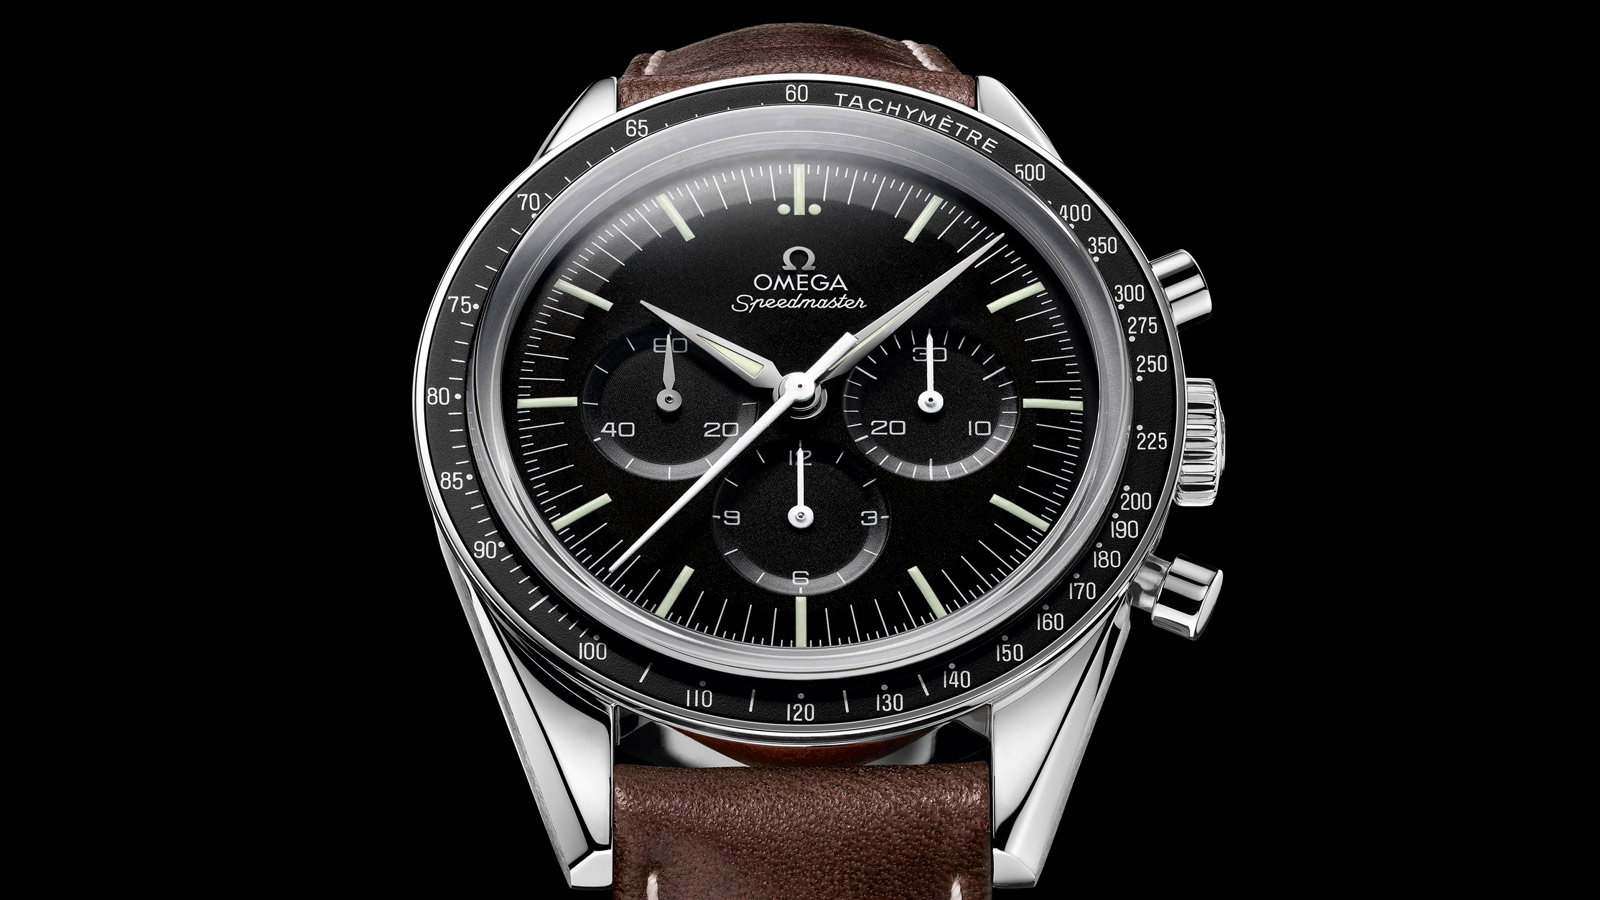 Speedmaster Moonwatch Moonwatch Chronograph 39.7 mm - 311.32.40.30.01.001 - View 3